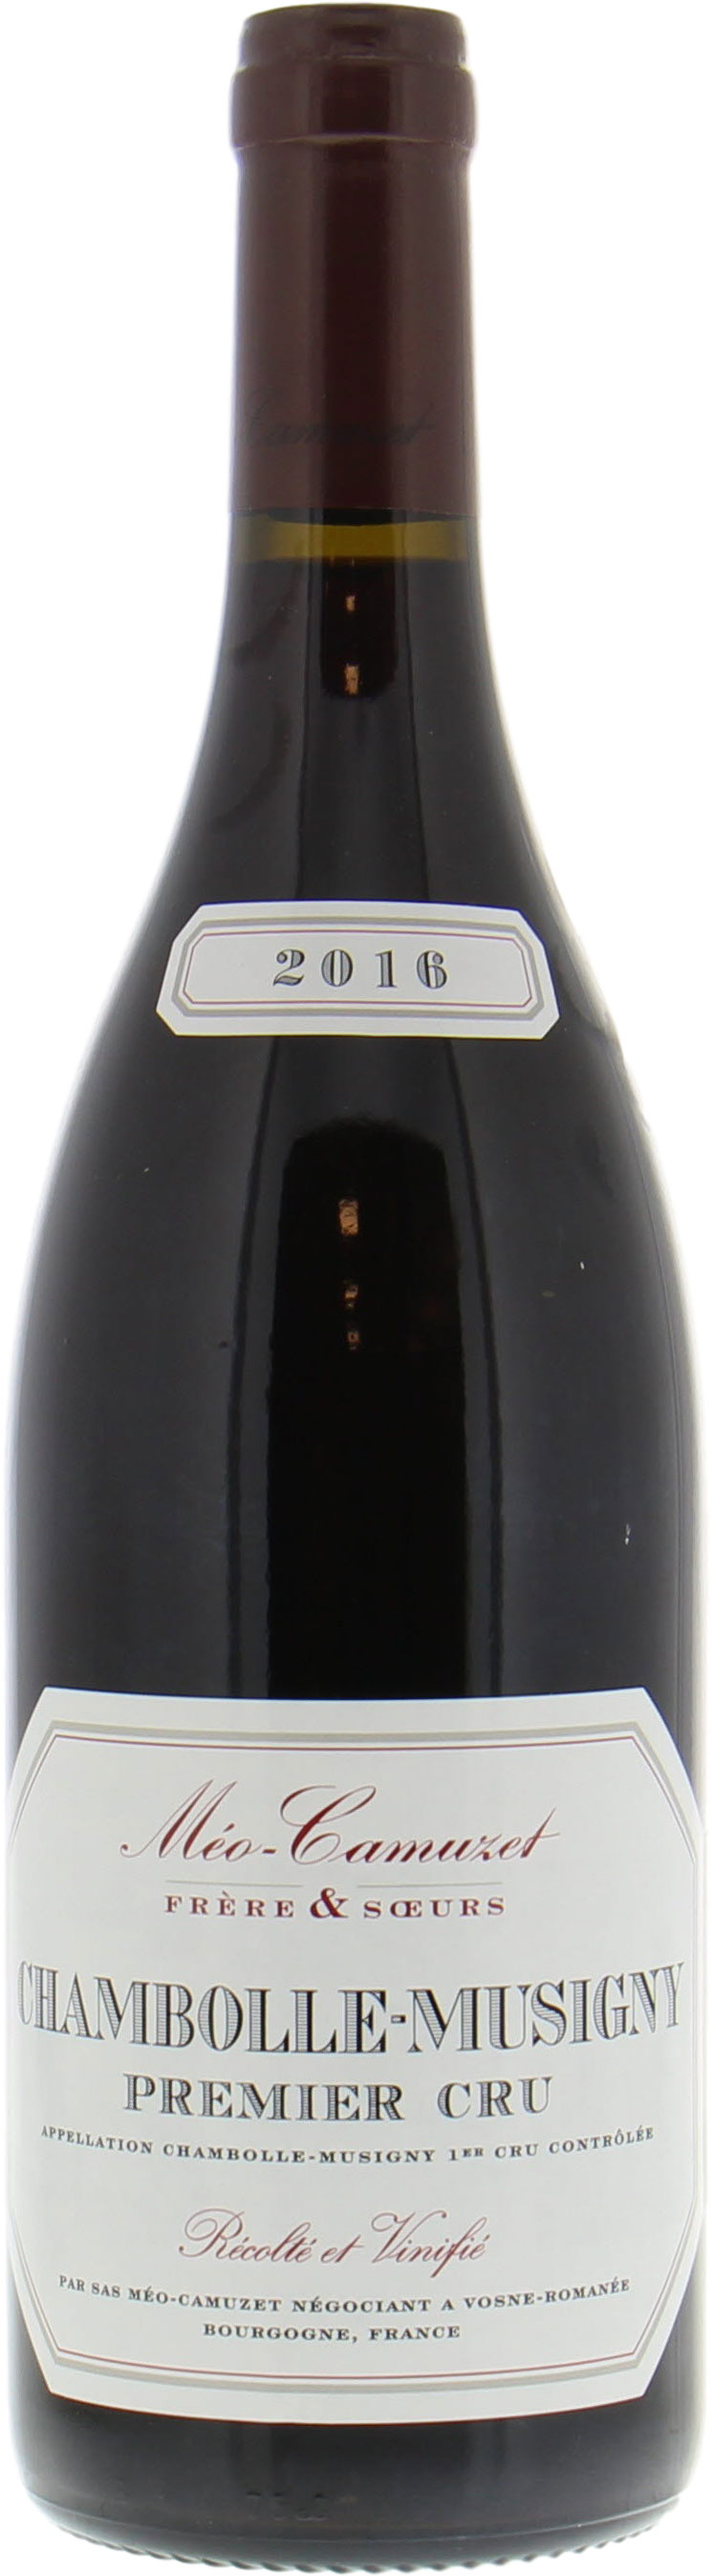 Meo Camuzet - Chambolle Musigny 1er cru 2016